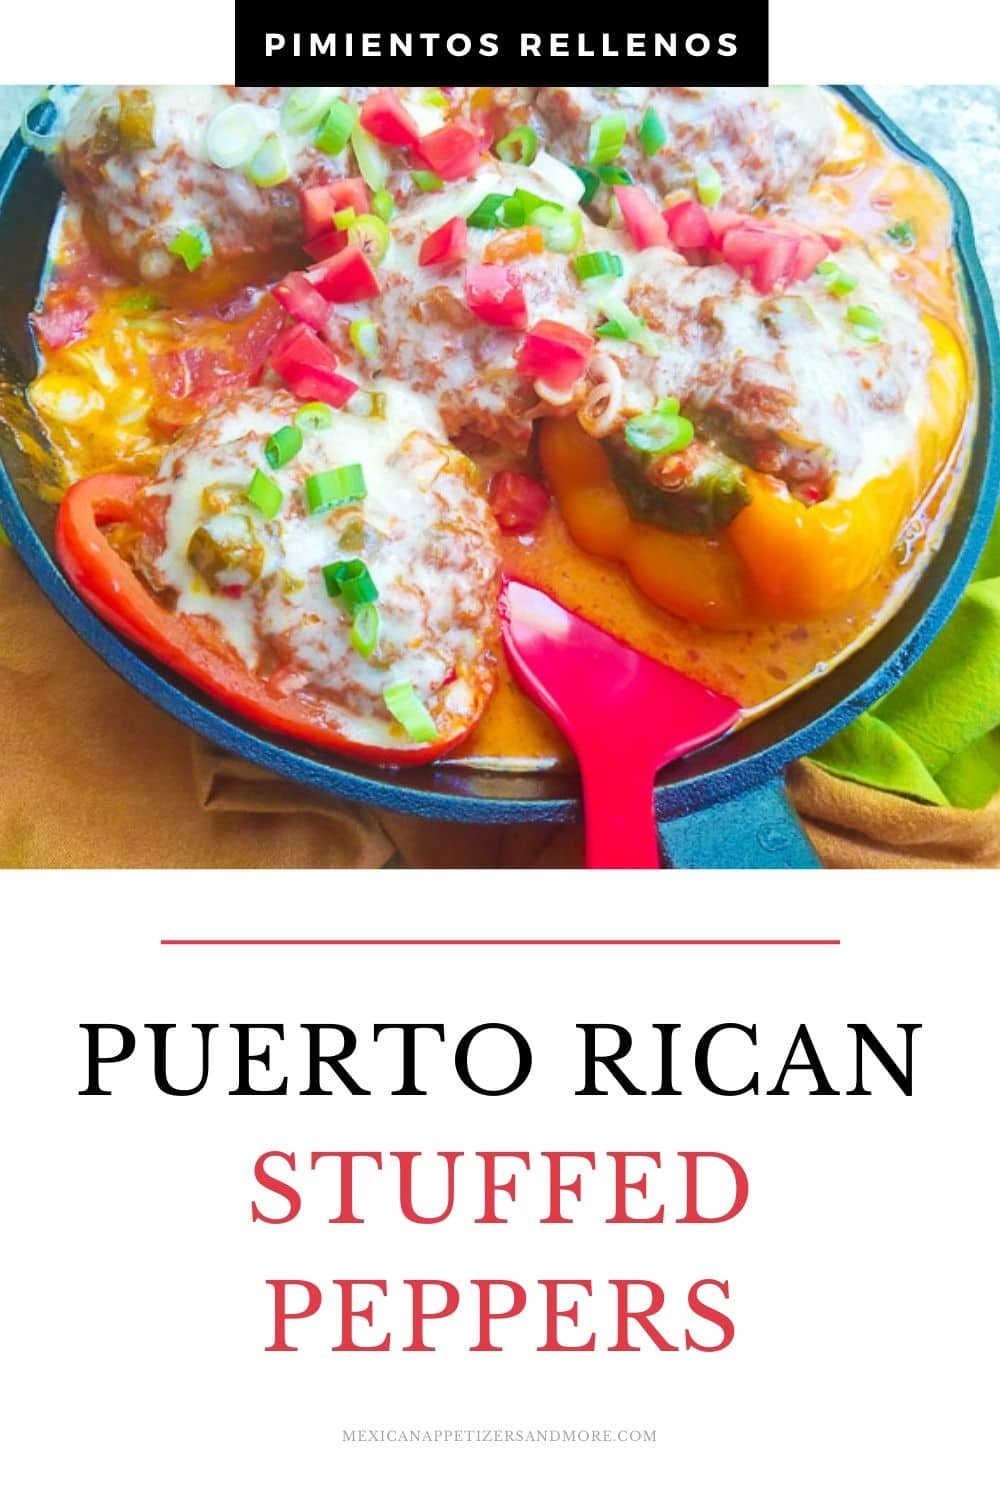 Puerto Rican Stuffed Peppers